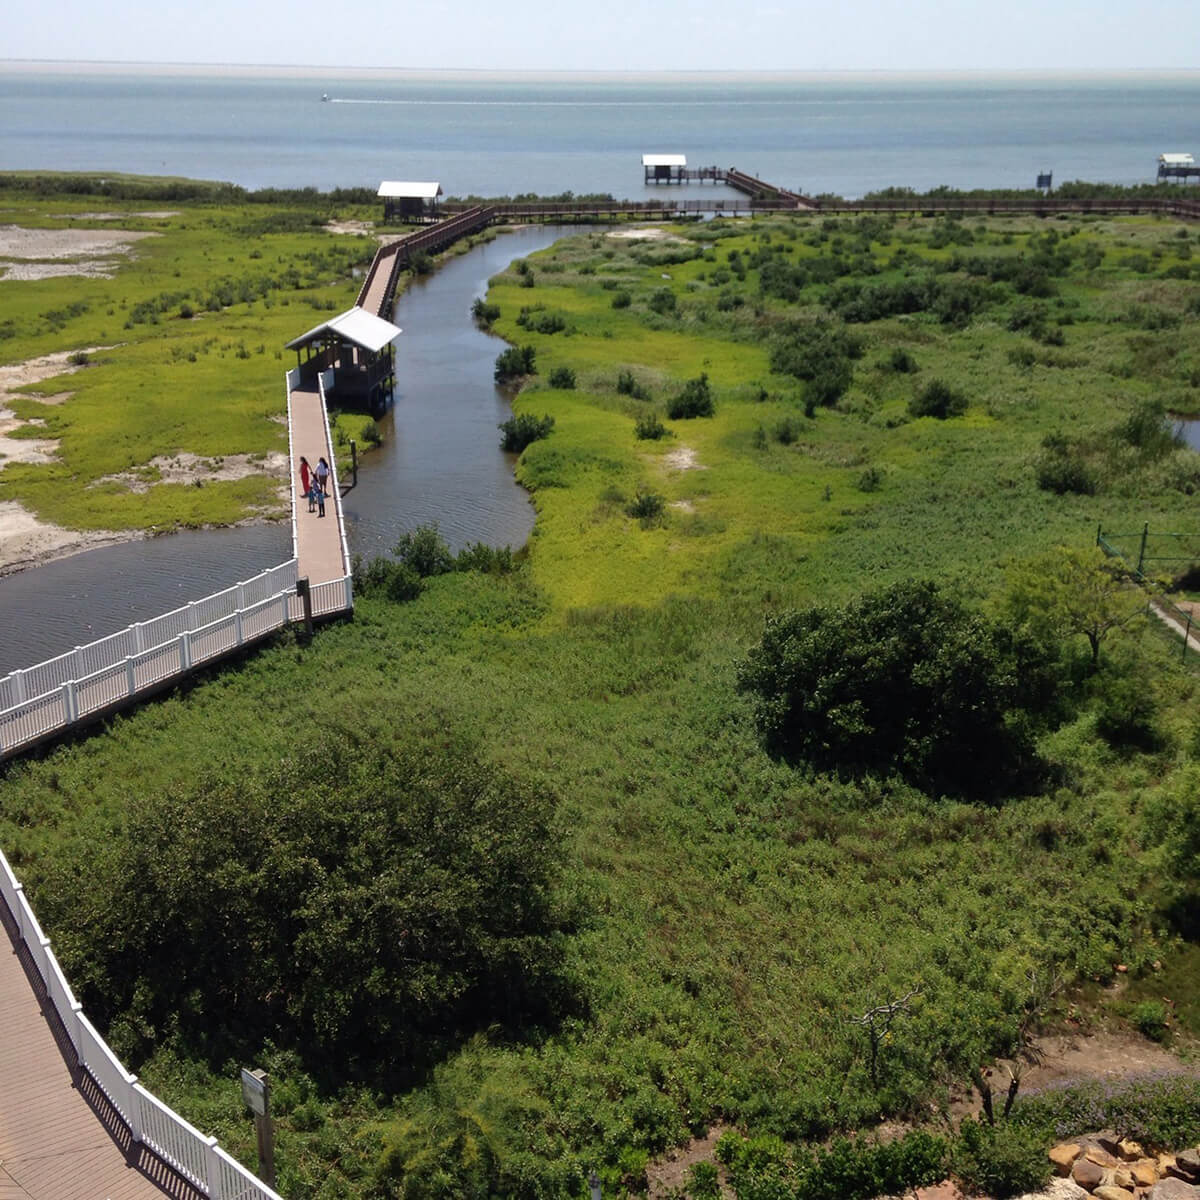 South Padre Island Birding and Nature Center, one of the unique and overlooked offbeat South Padre Island activities